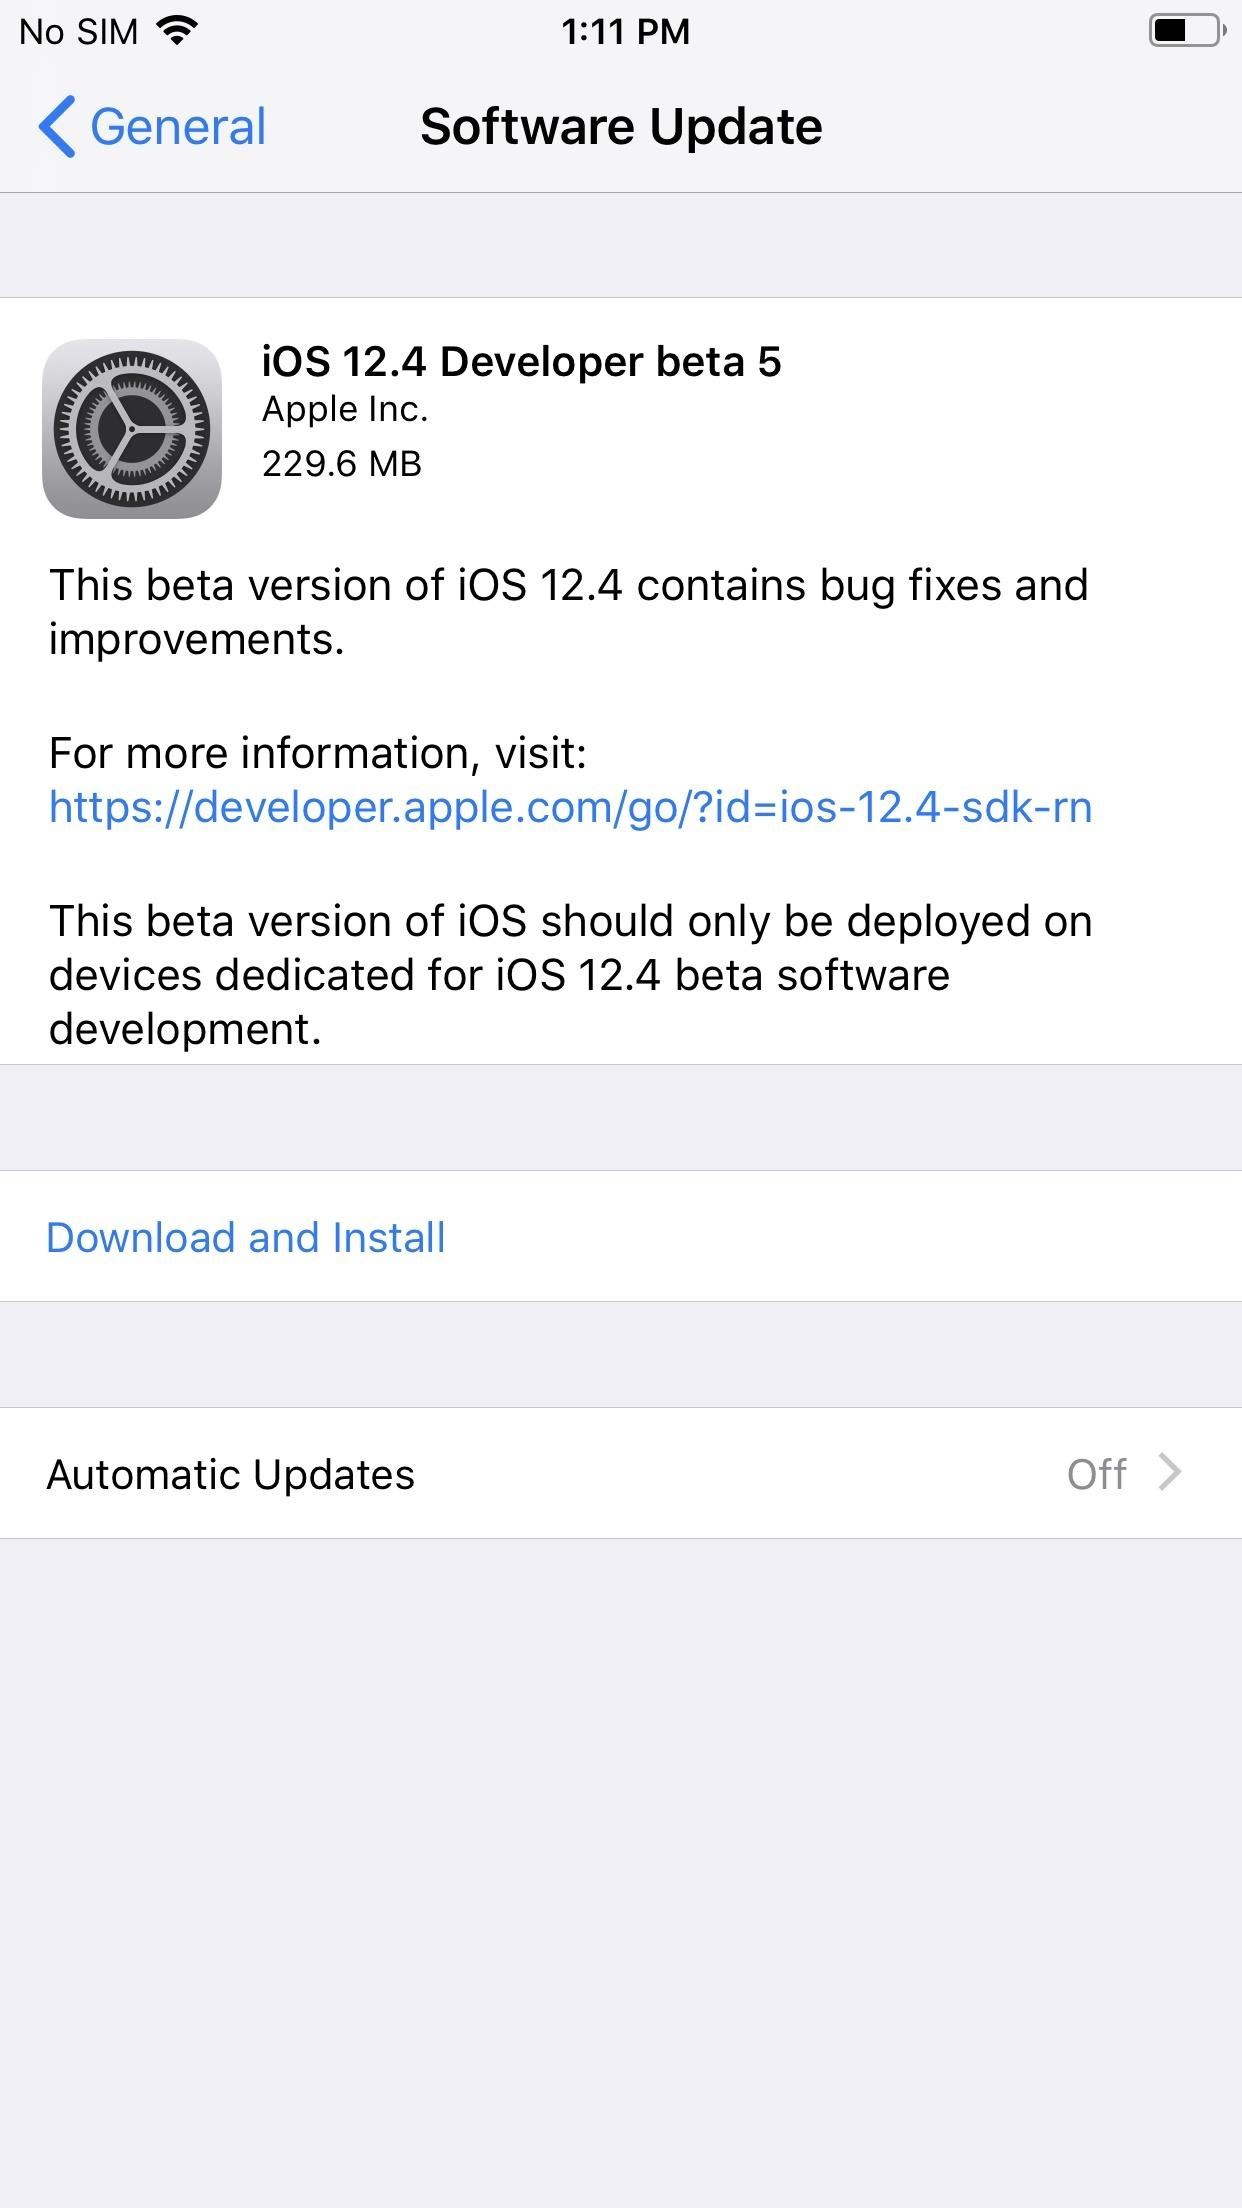 Apple releases iOS 12.4 Beta 5 for developers and public beta testers